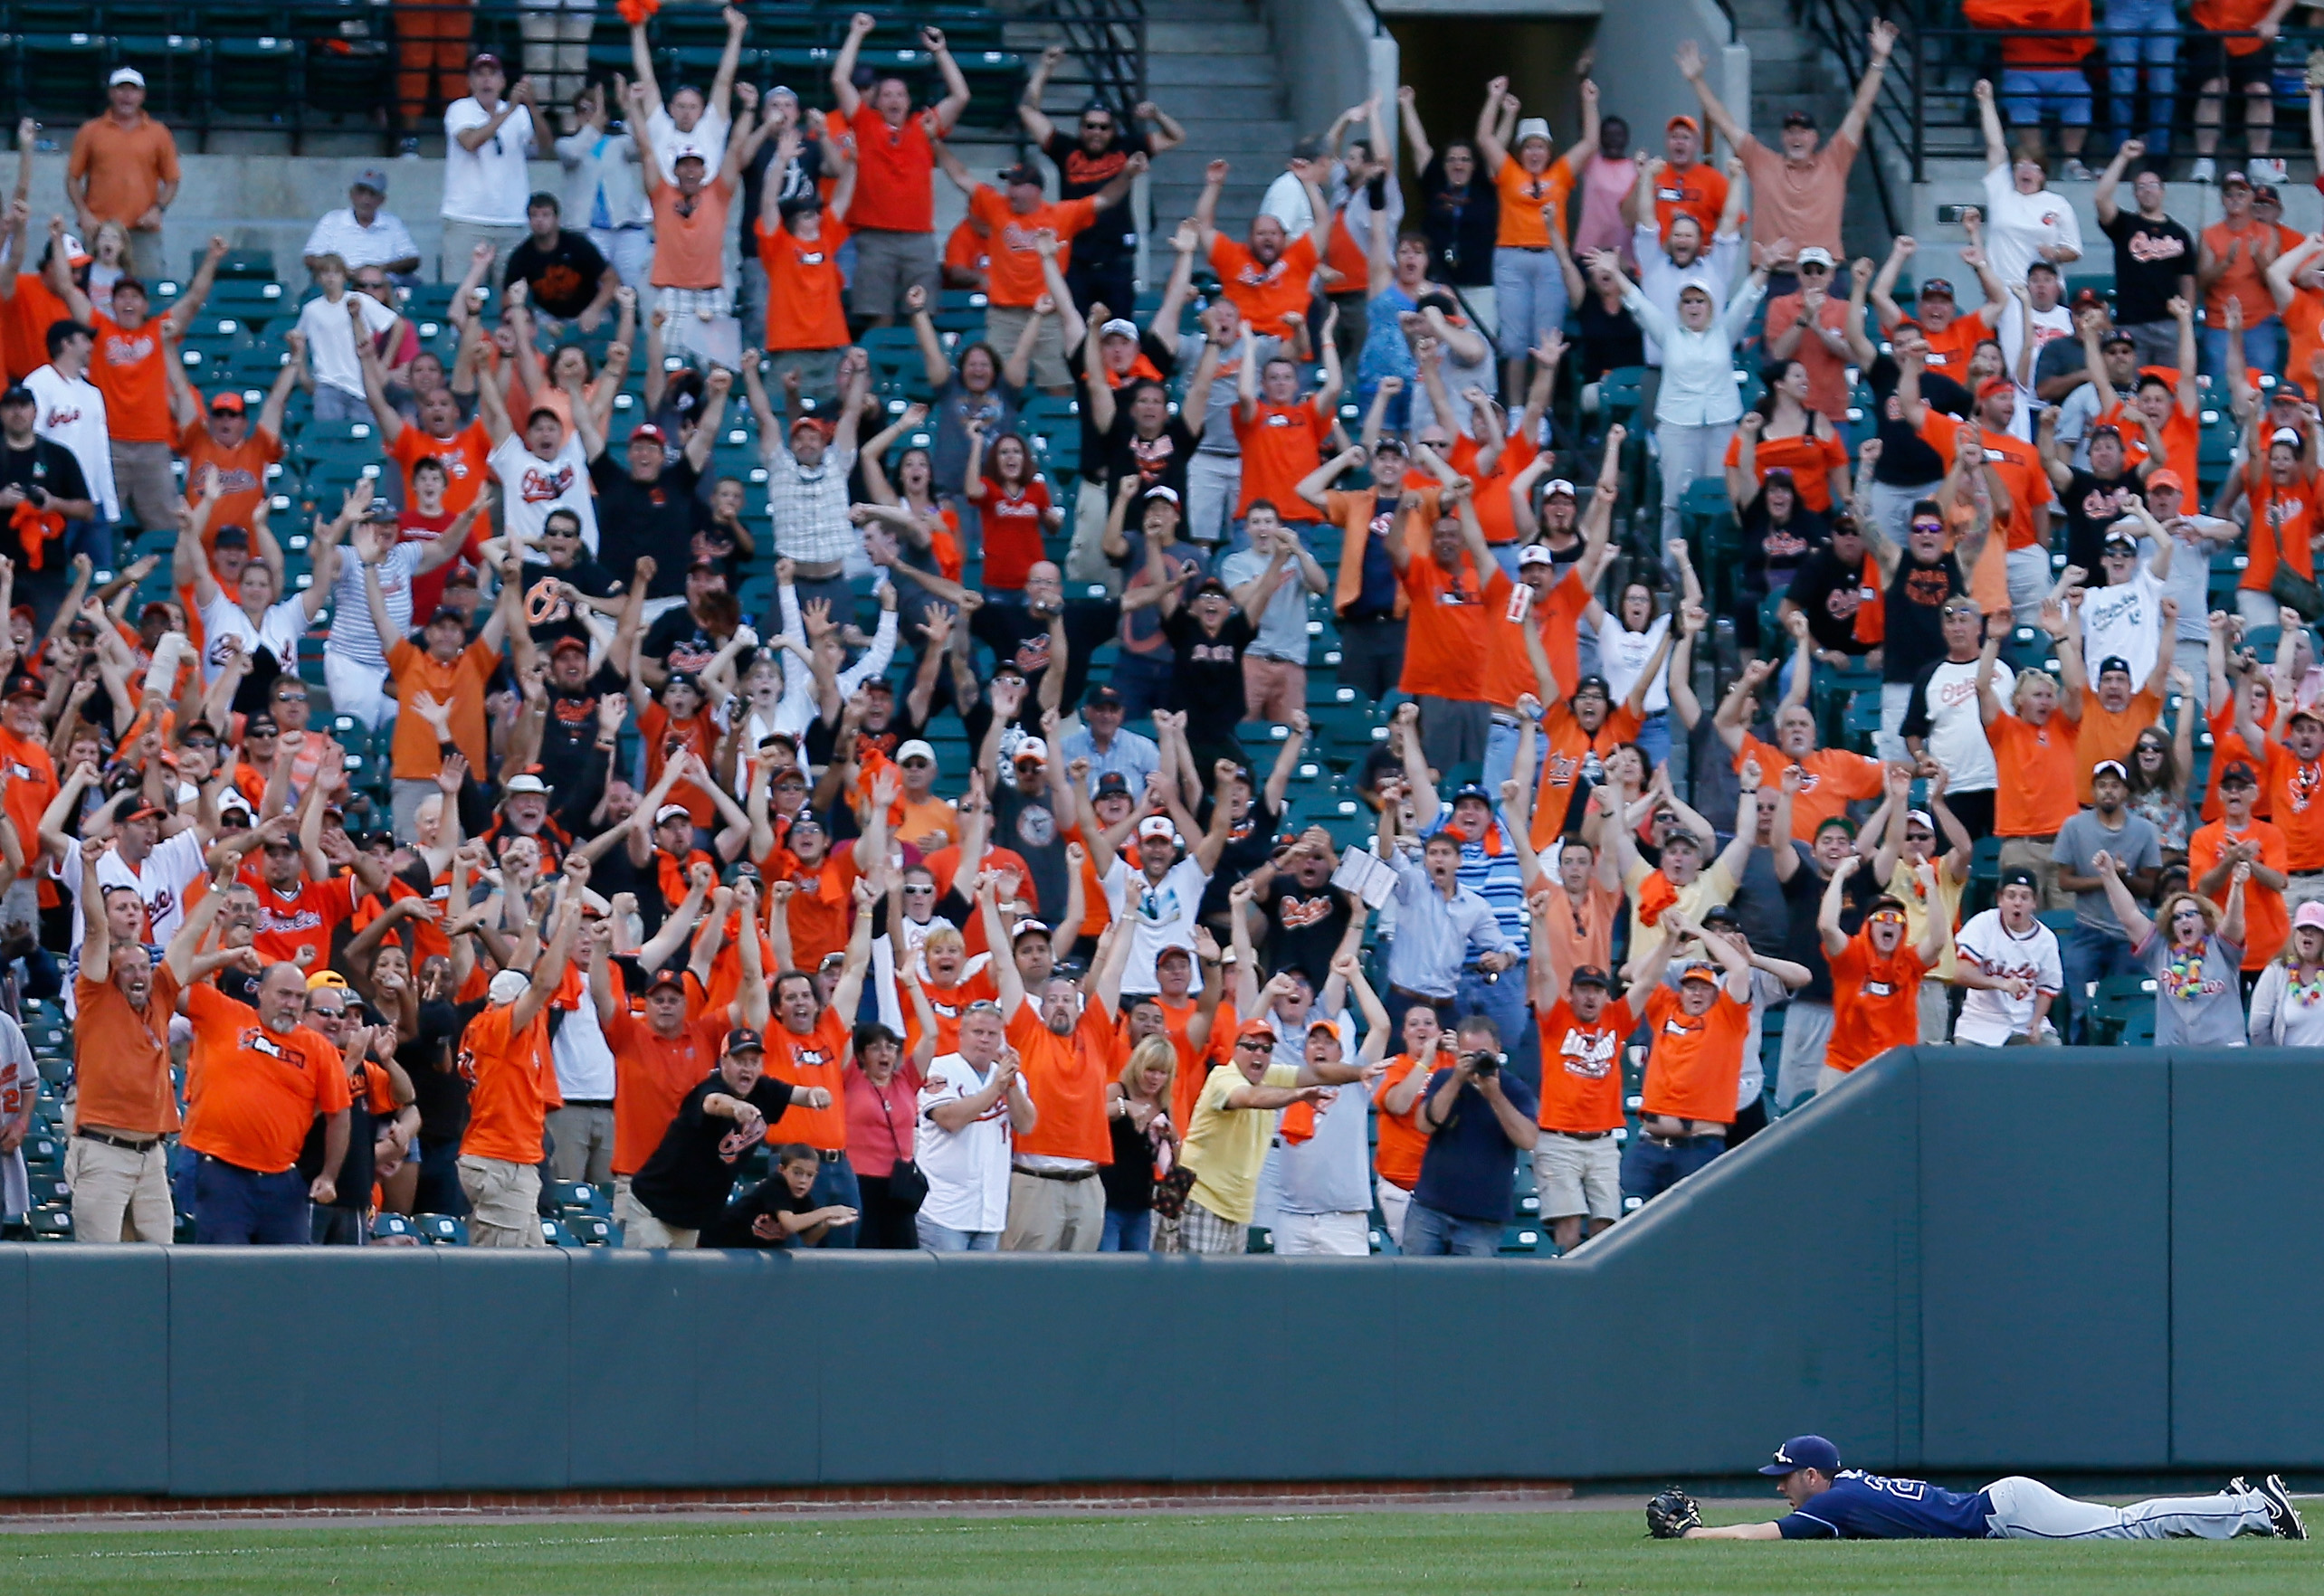 Matt Joyce couldn't come up with the big catch, much to the delight of the fans at Camden Yards. (Getty)